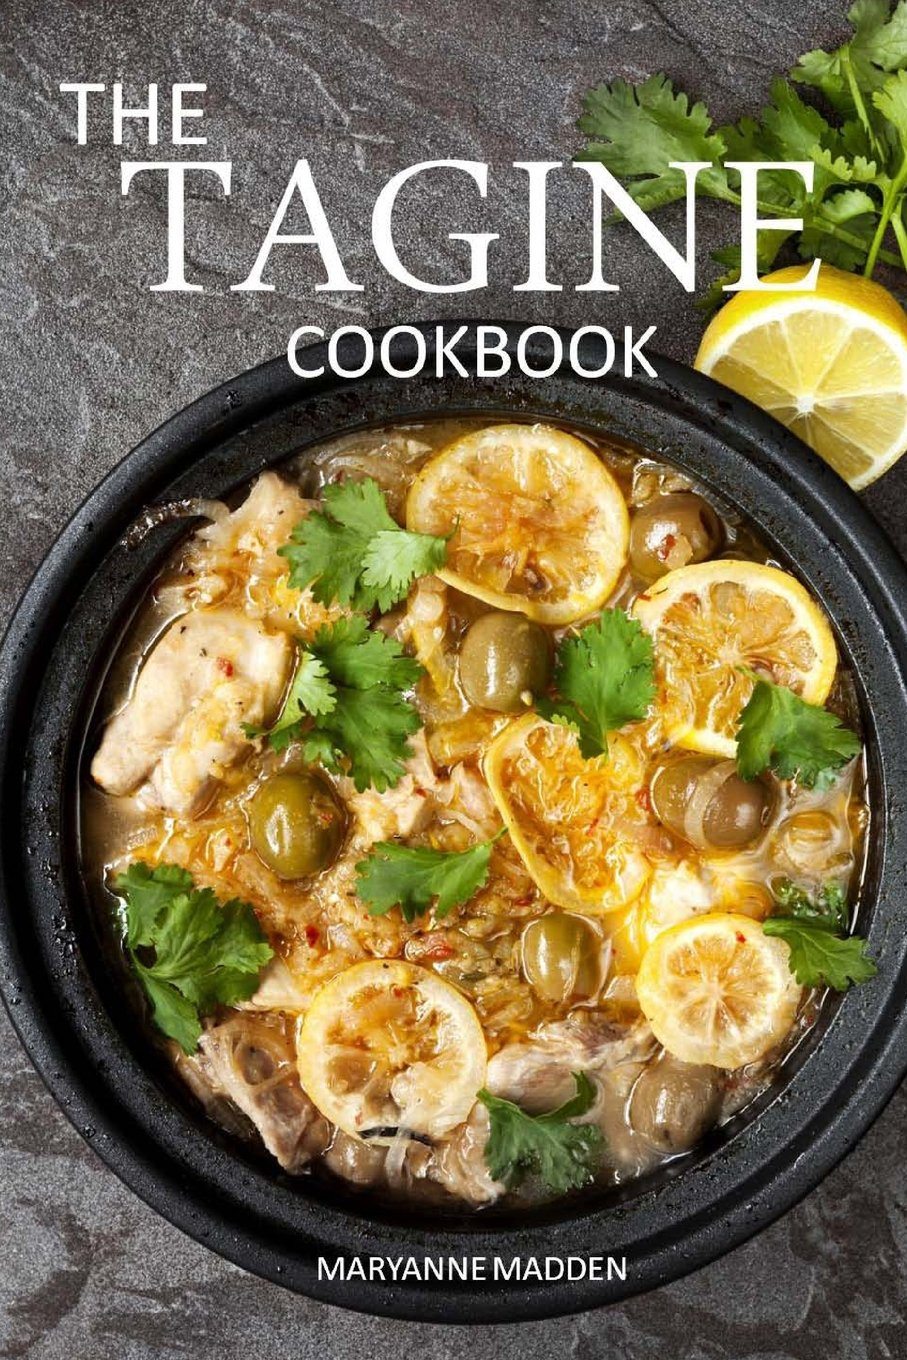 The Tagine Cookbook: Recipes for Tagines and Moroccan Dishes pdf